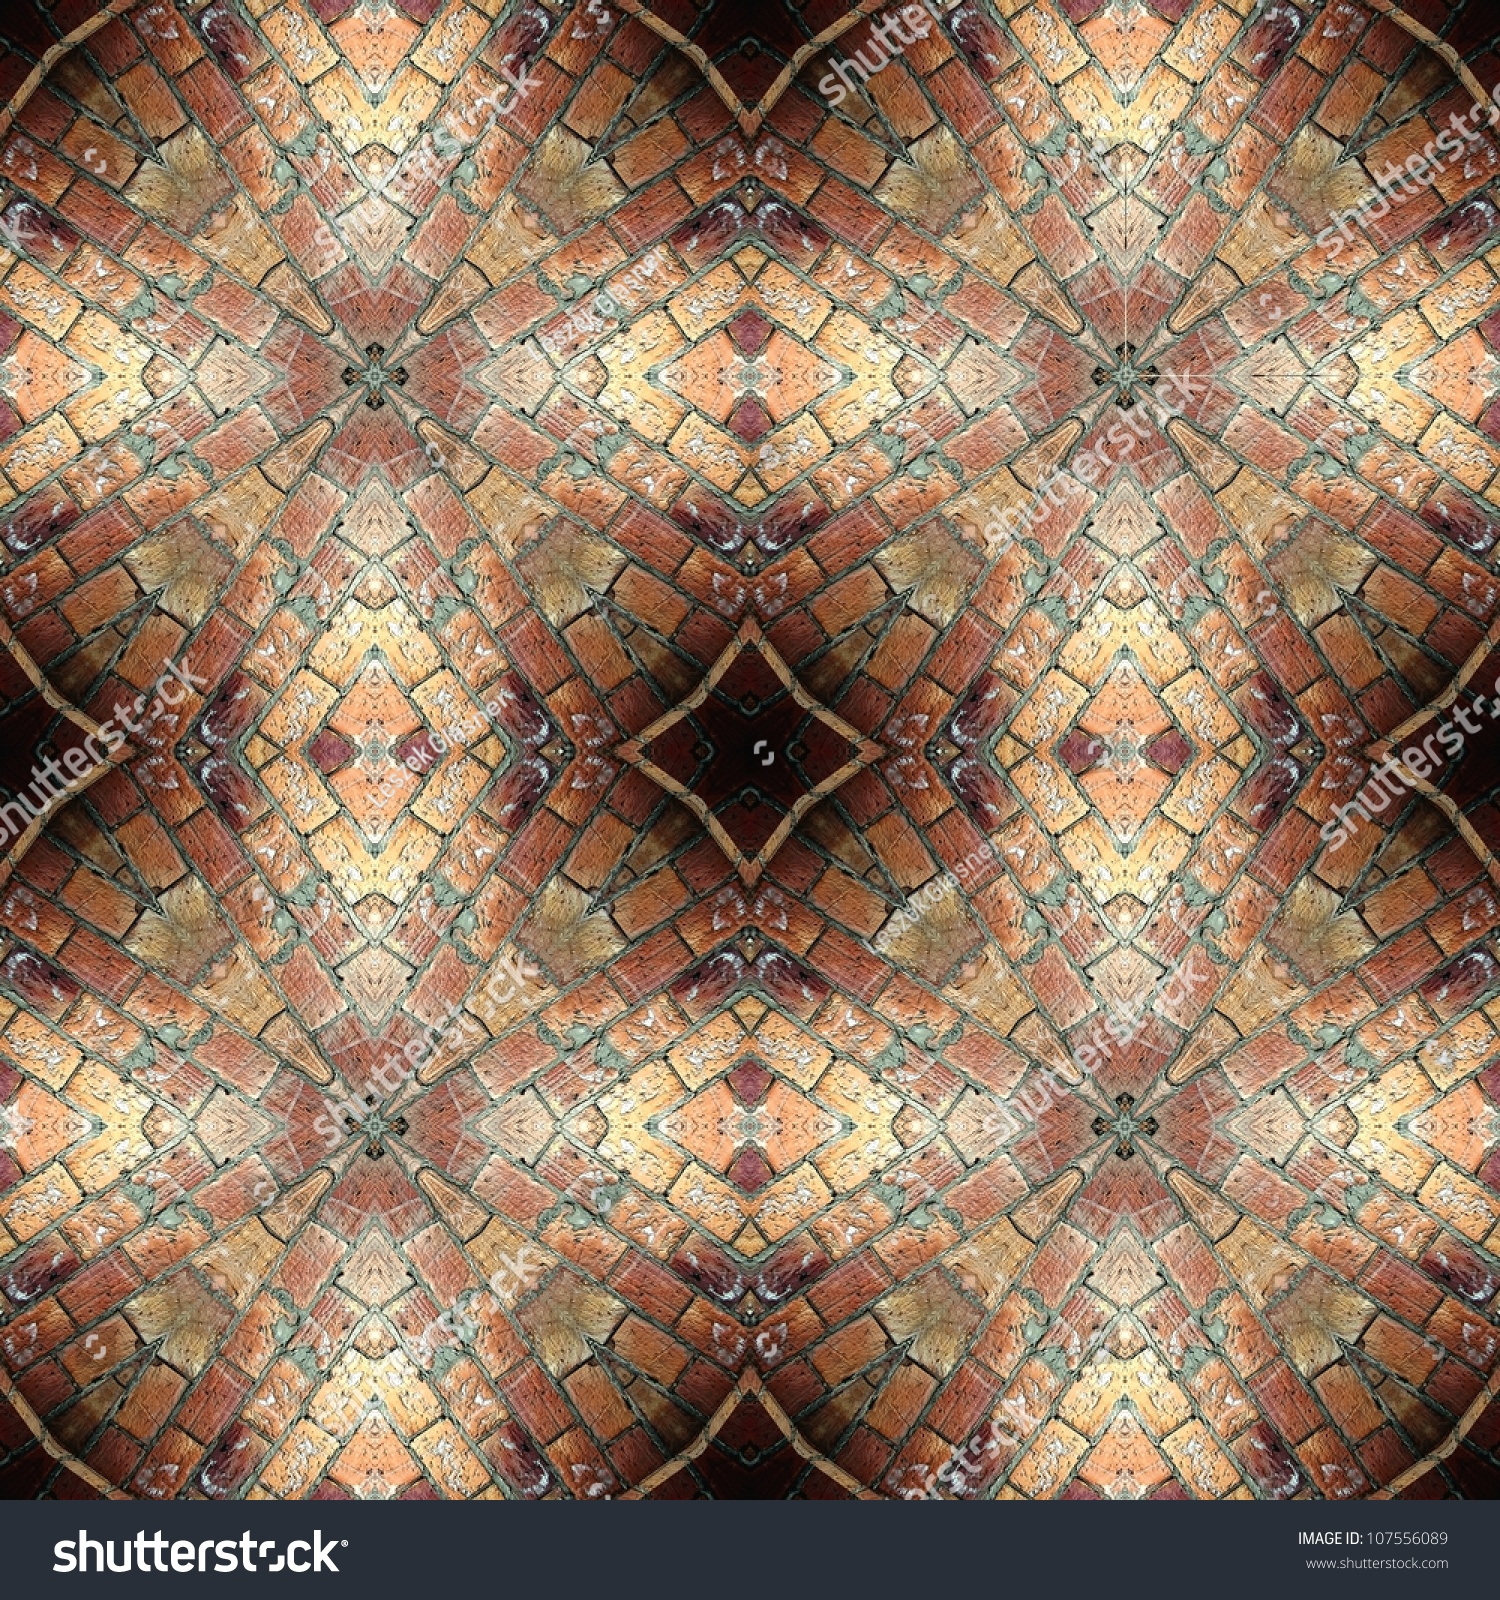 Seamless Brick Pattern, Aged Floor Tiles To Use As Wallpaper, Surface Texture, Web Page ...